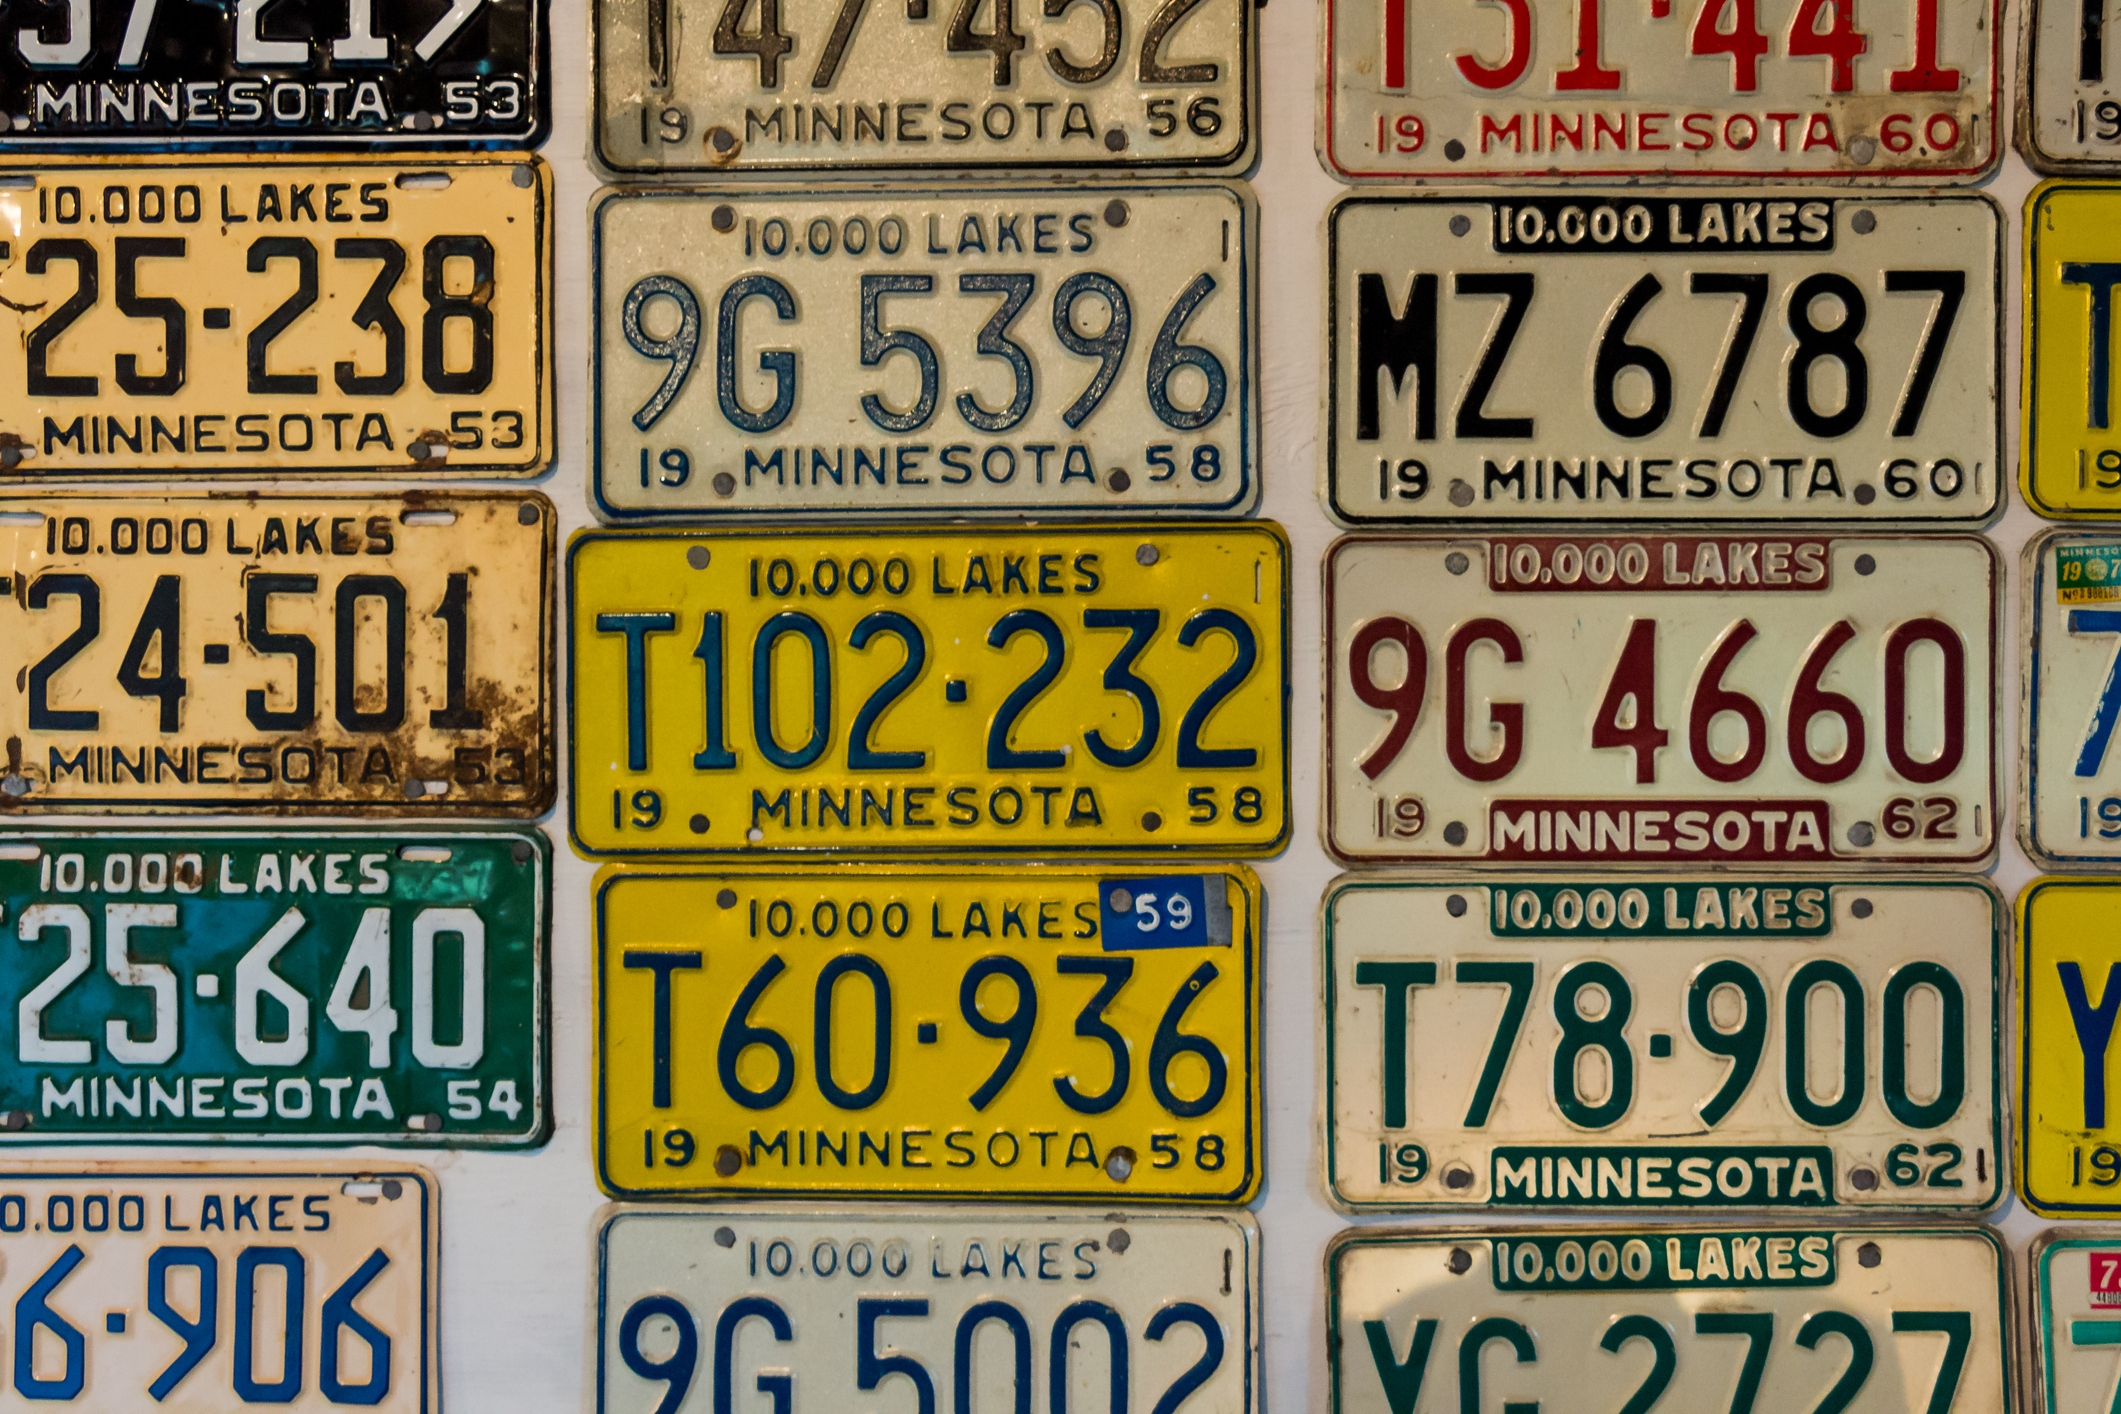 Minnesota's new vehicle licensing system is (mostly) going OK | StateScoop